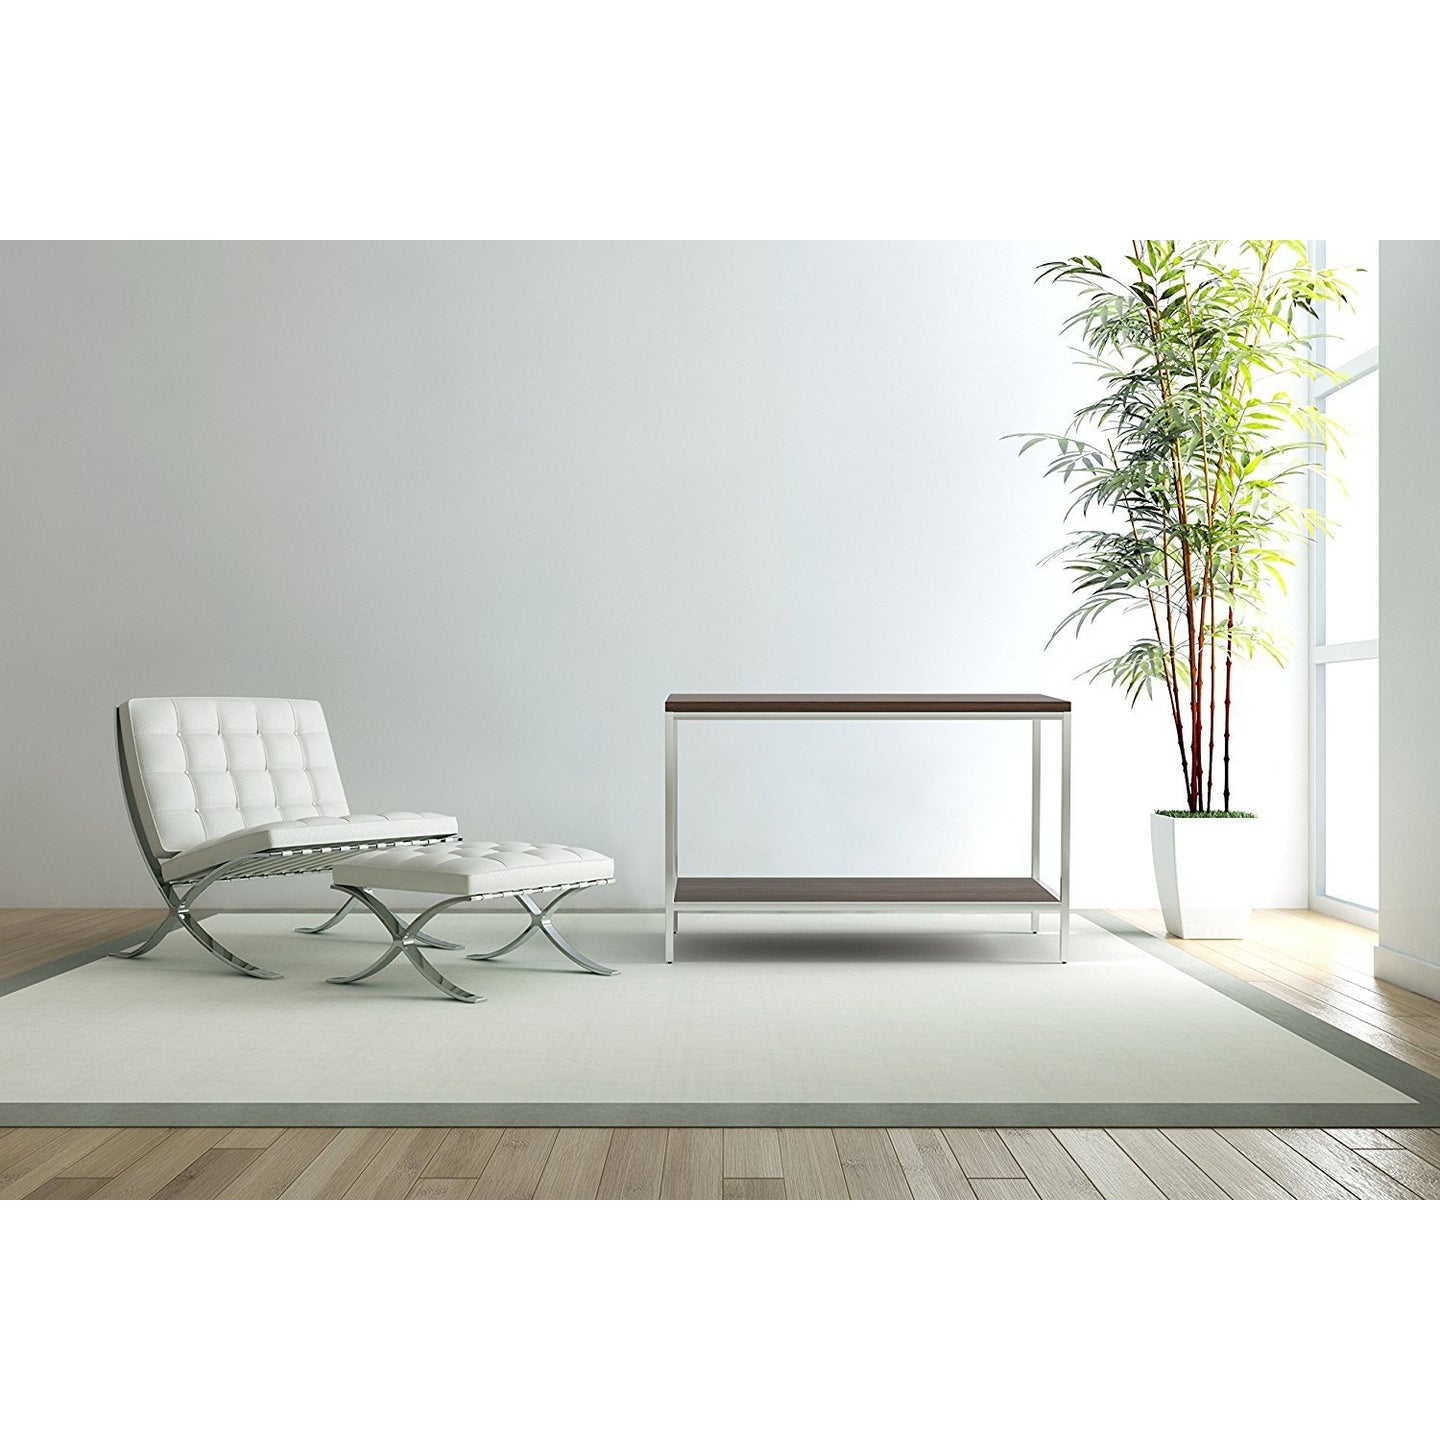 Bamboogle Dark Grey Console Table With Silver Legs BKL-10-S-4414-G-Minimal & Modern